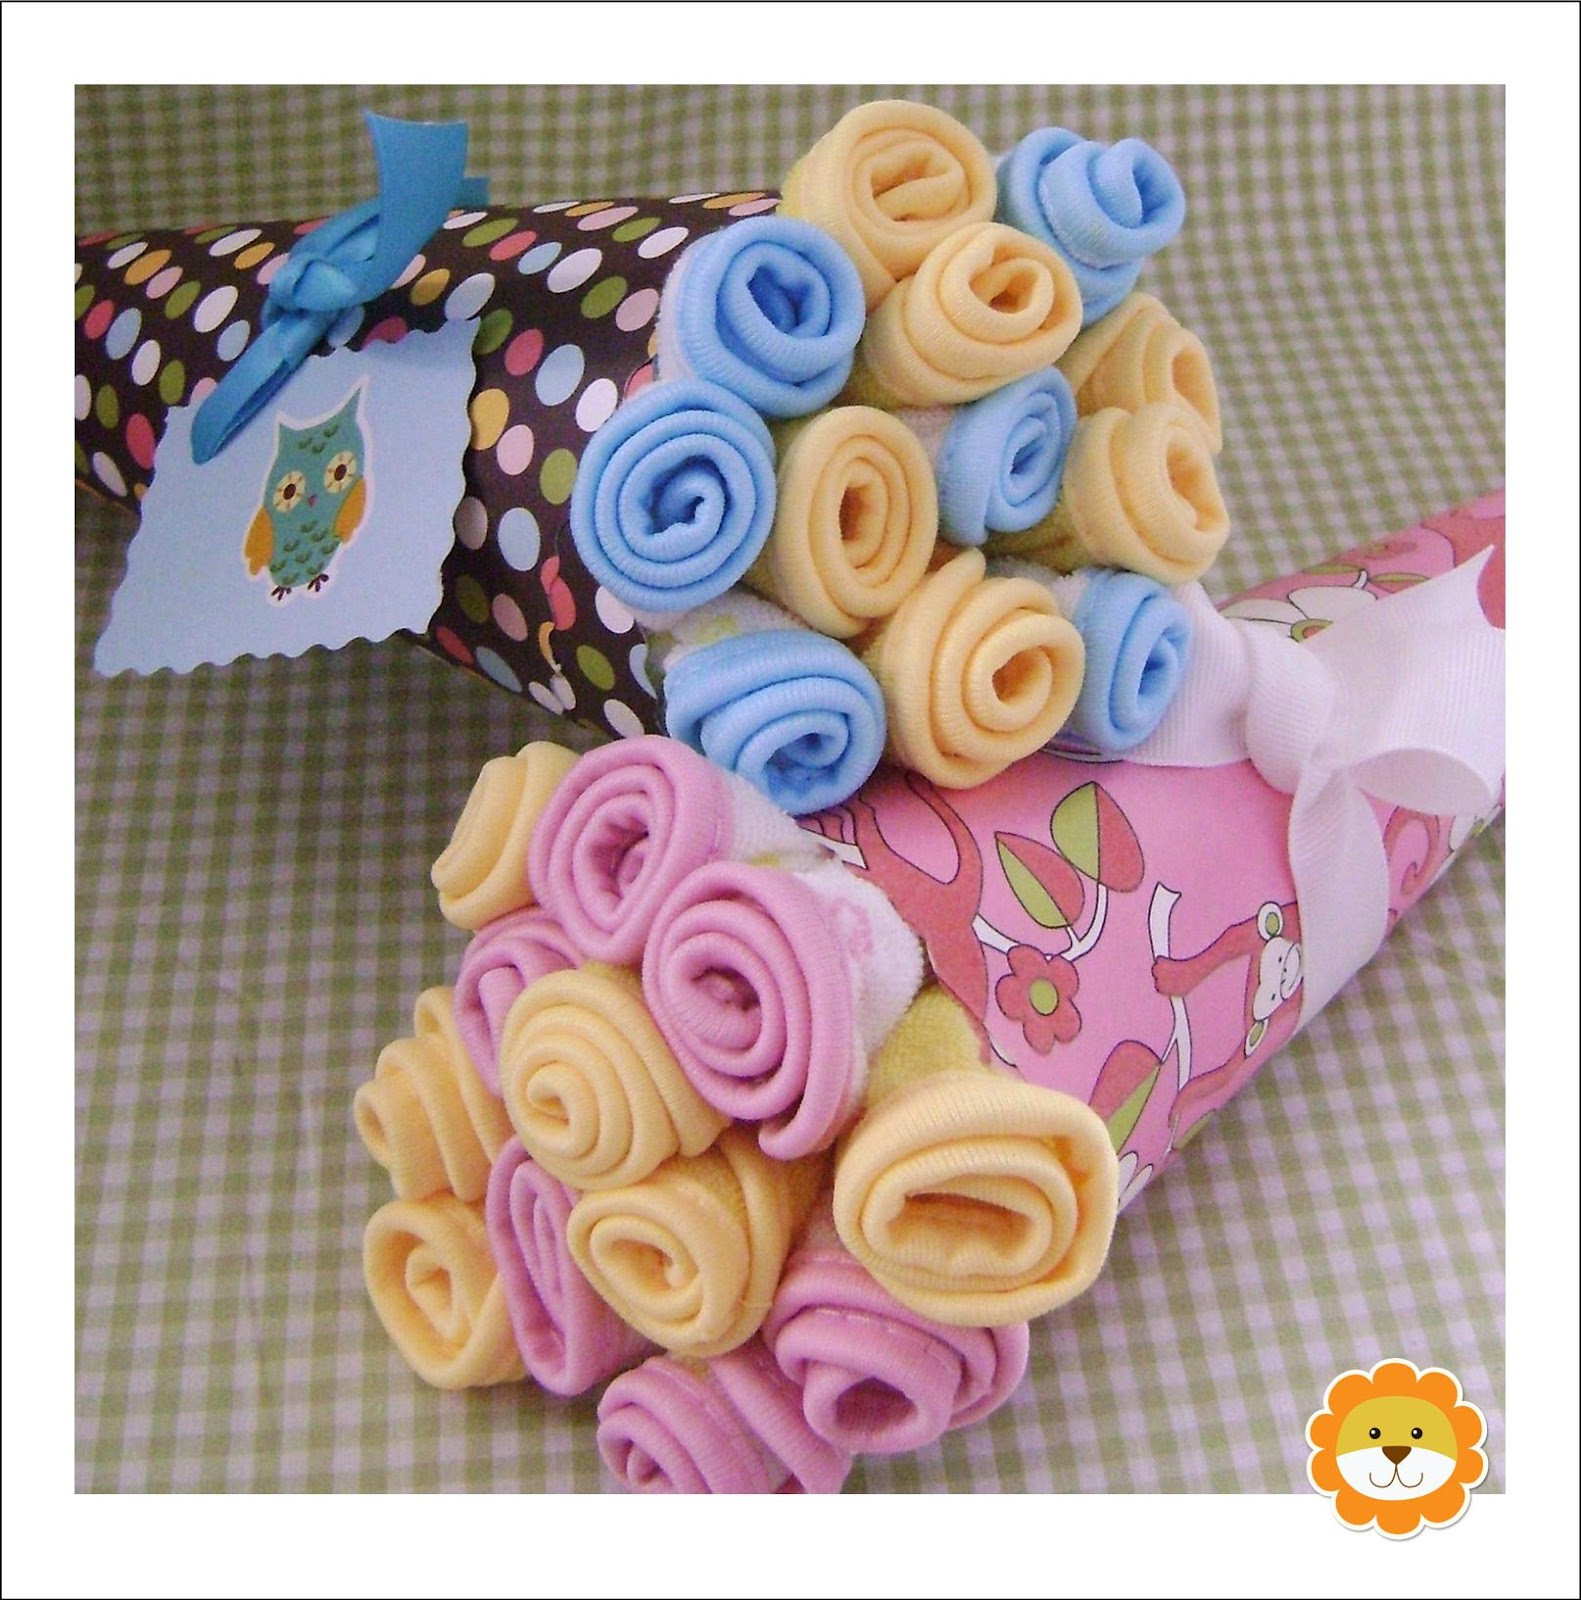 Best ideas about Ideas For A Baby Shower Gift . Save or Pin It s Written on the Wall Cute Ideas for Your Baby Shower Now.